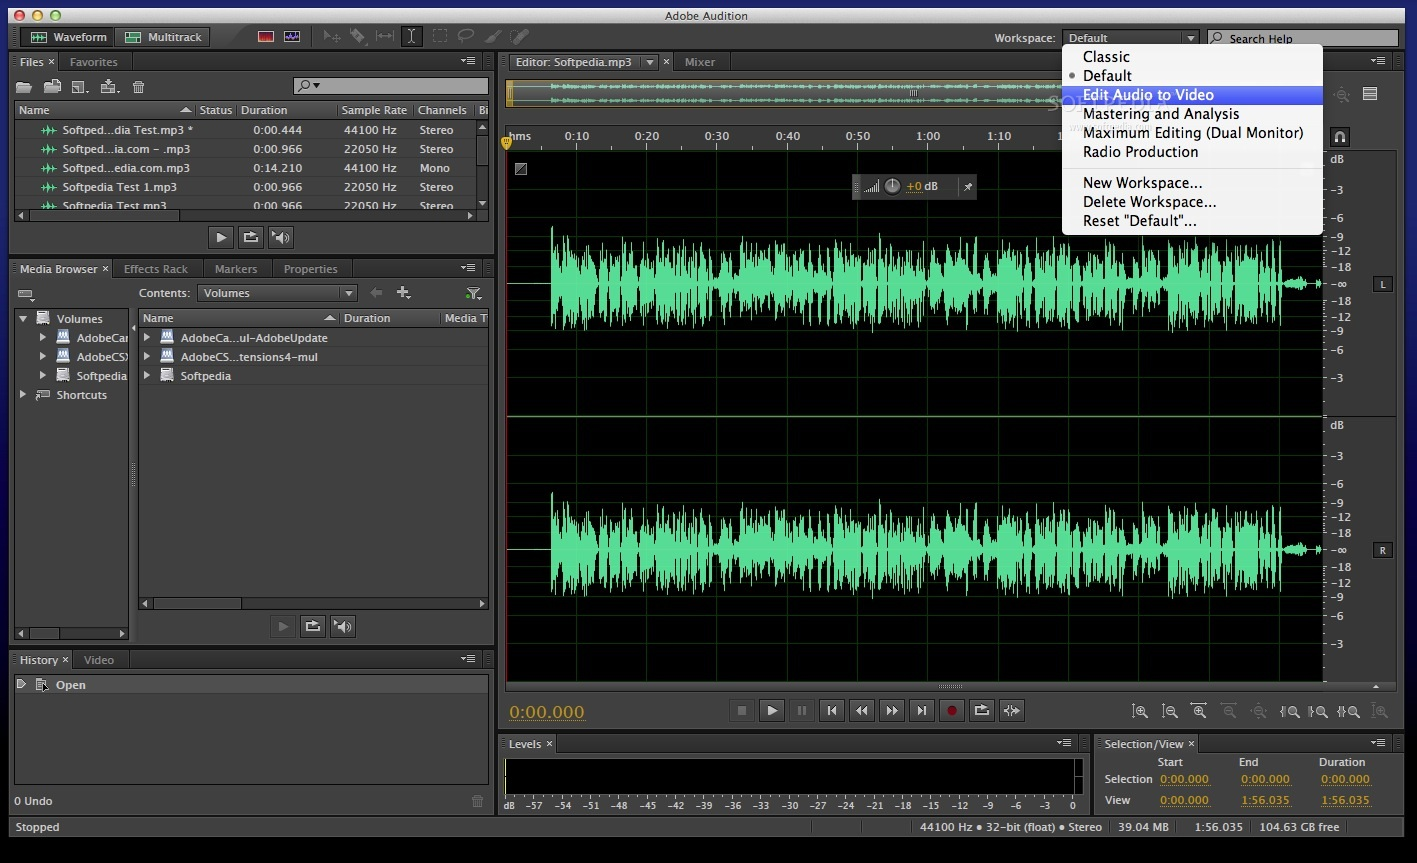 Adobe Audition Mac Cc 2019 12 1 1 Download